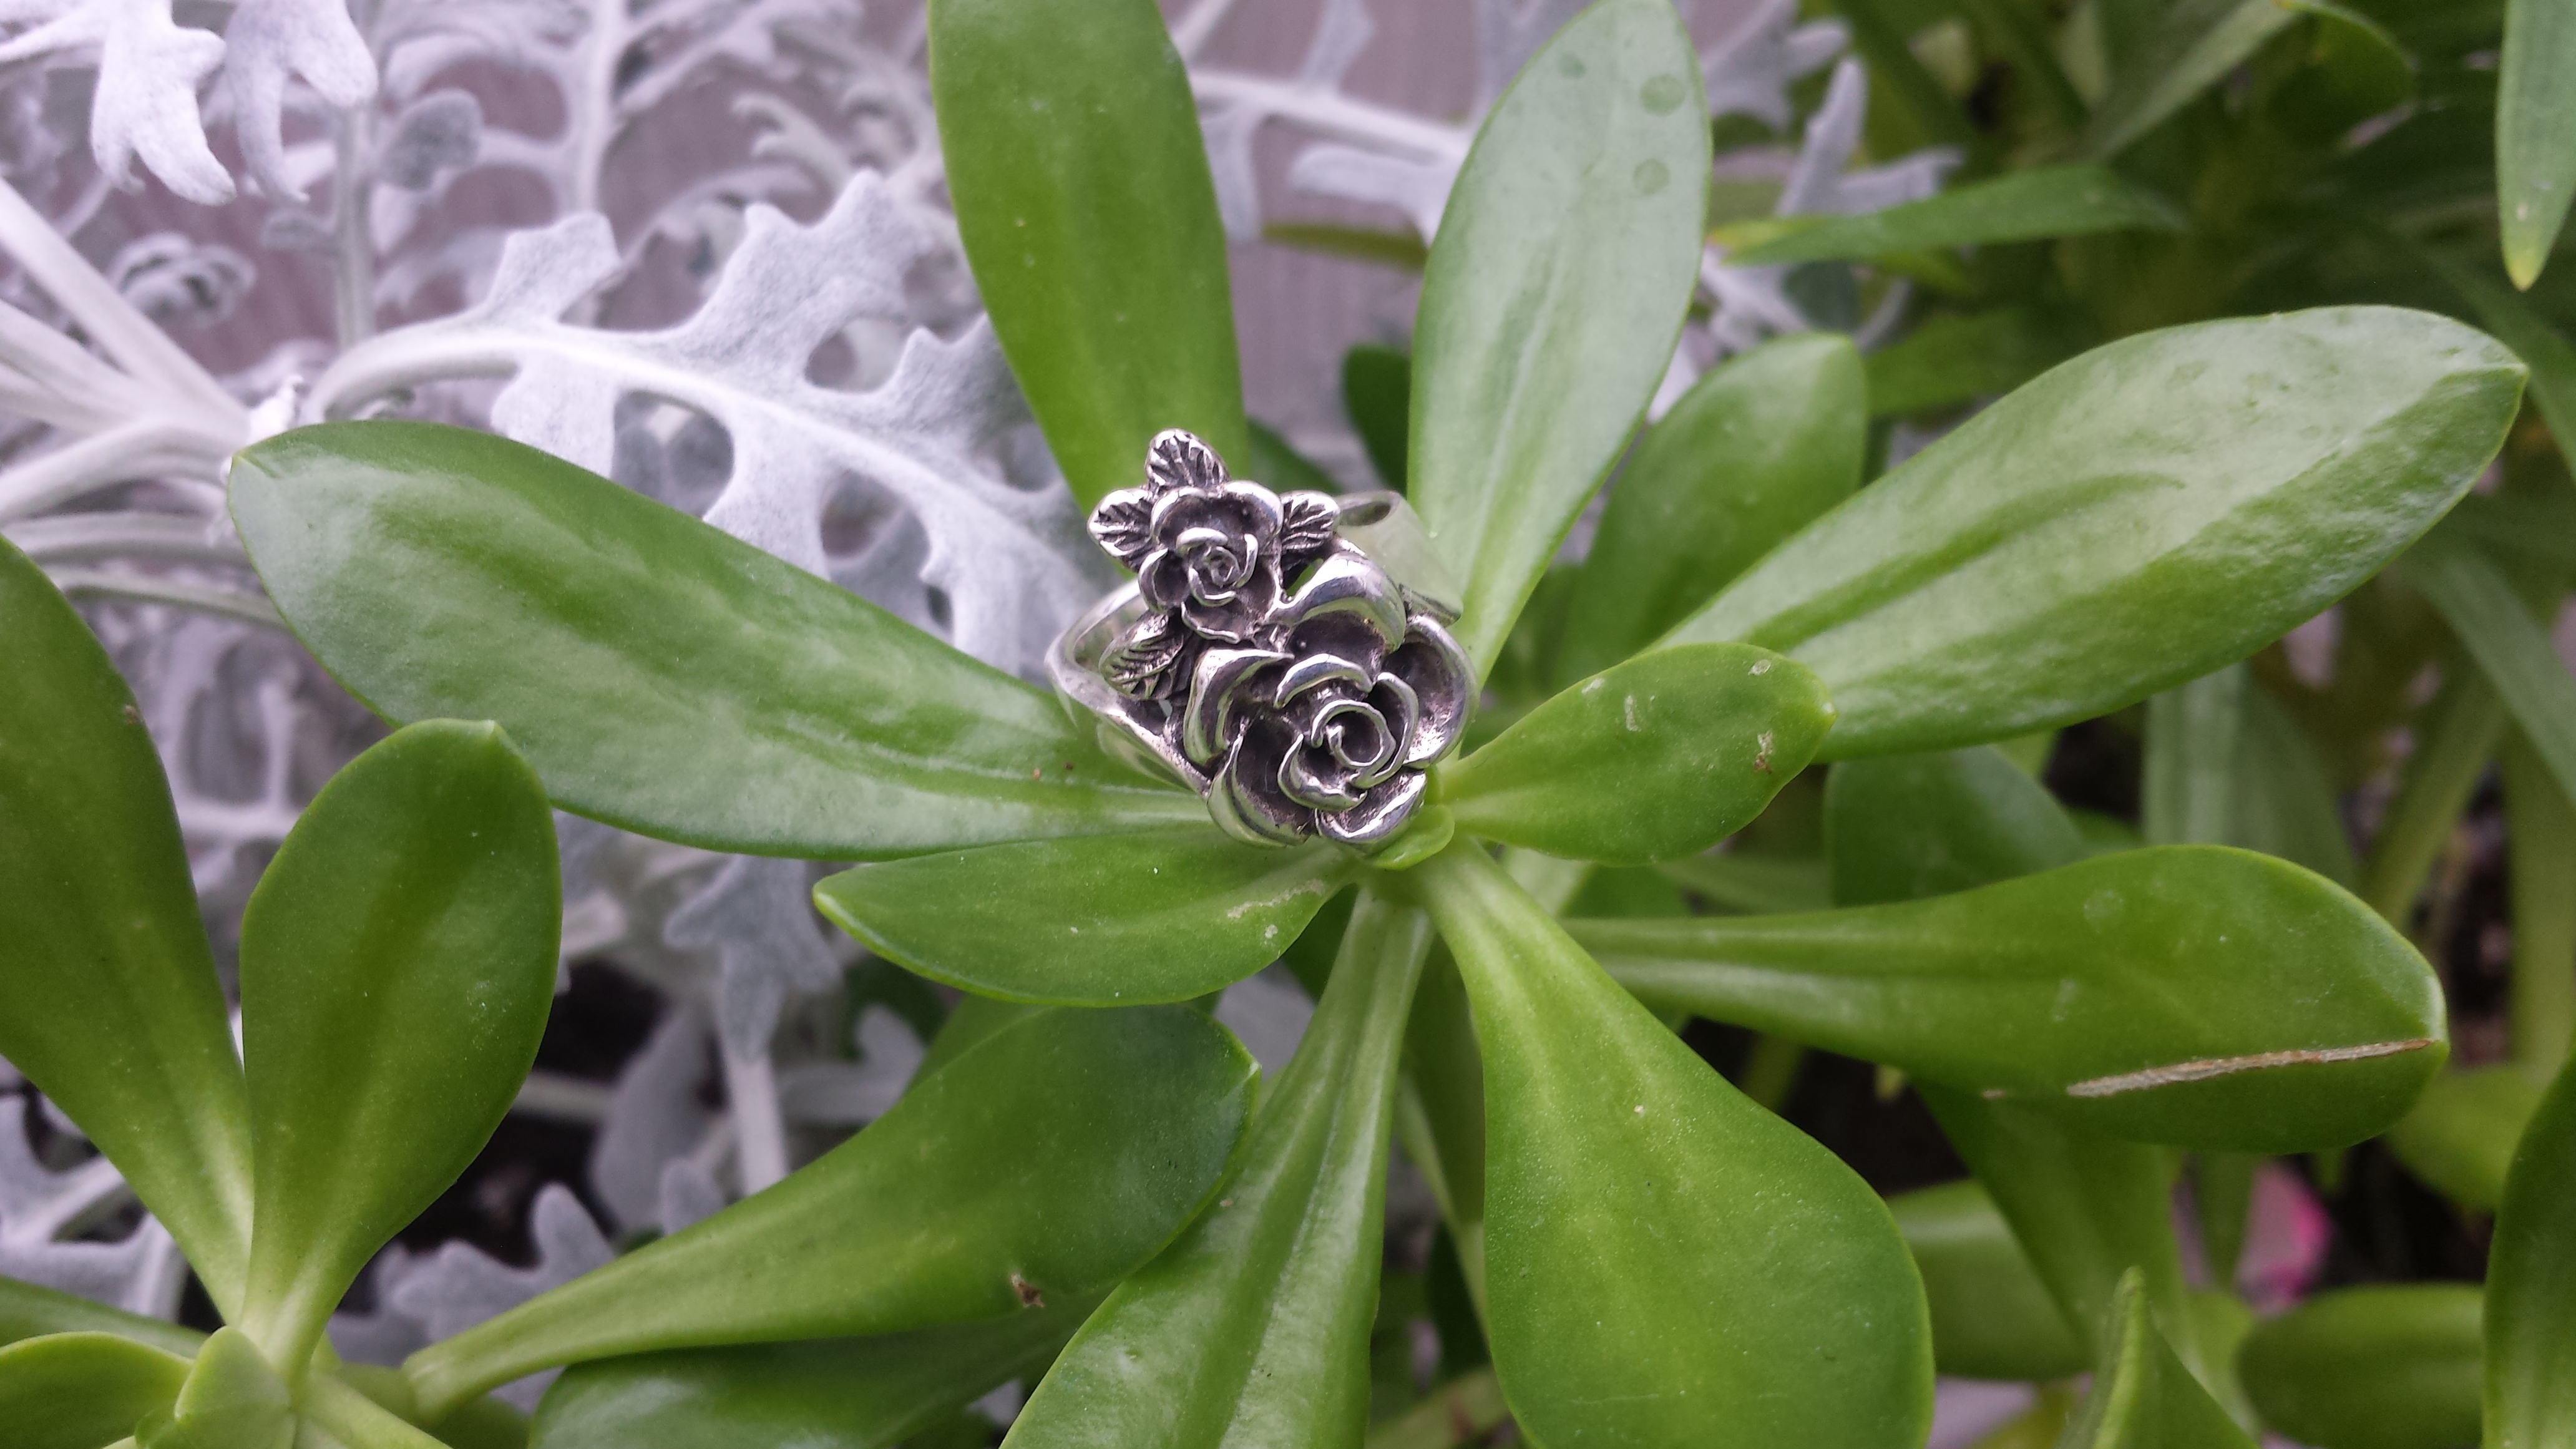 WONDERFUL ROSES RING WITH 925 STERLING SILVER. 7 G